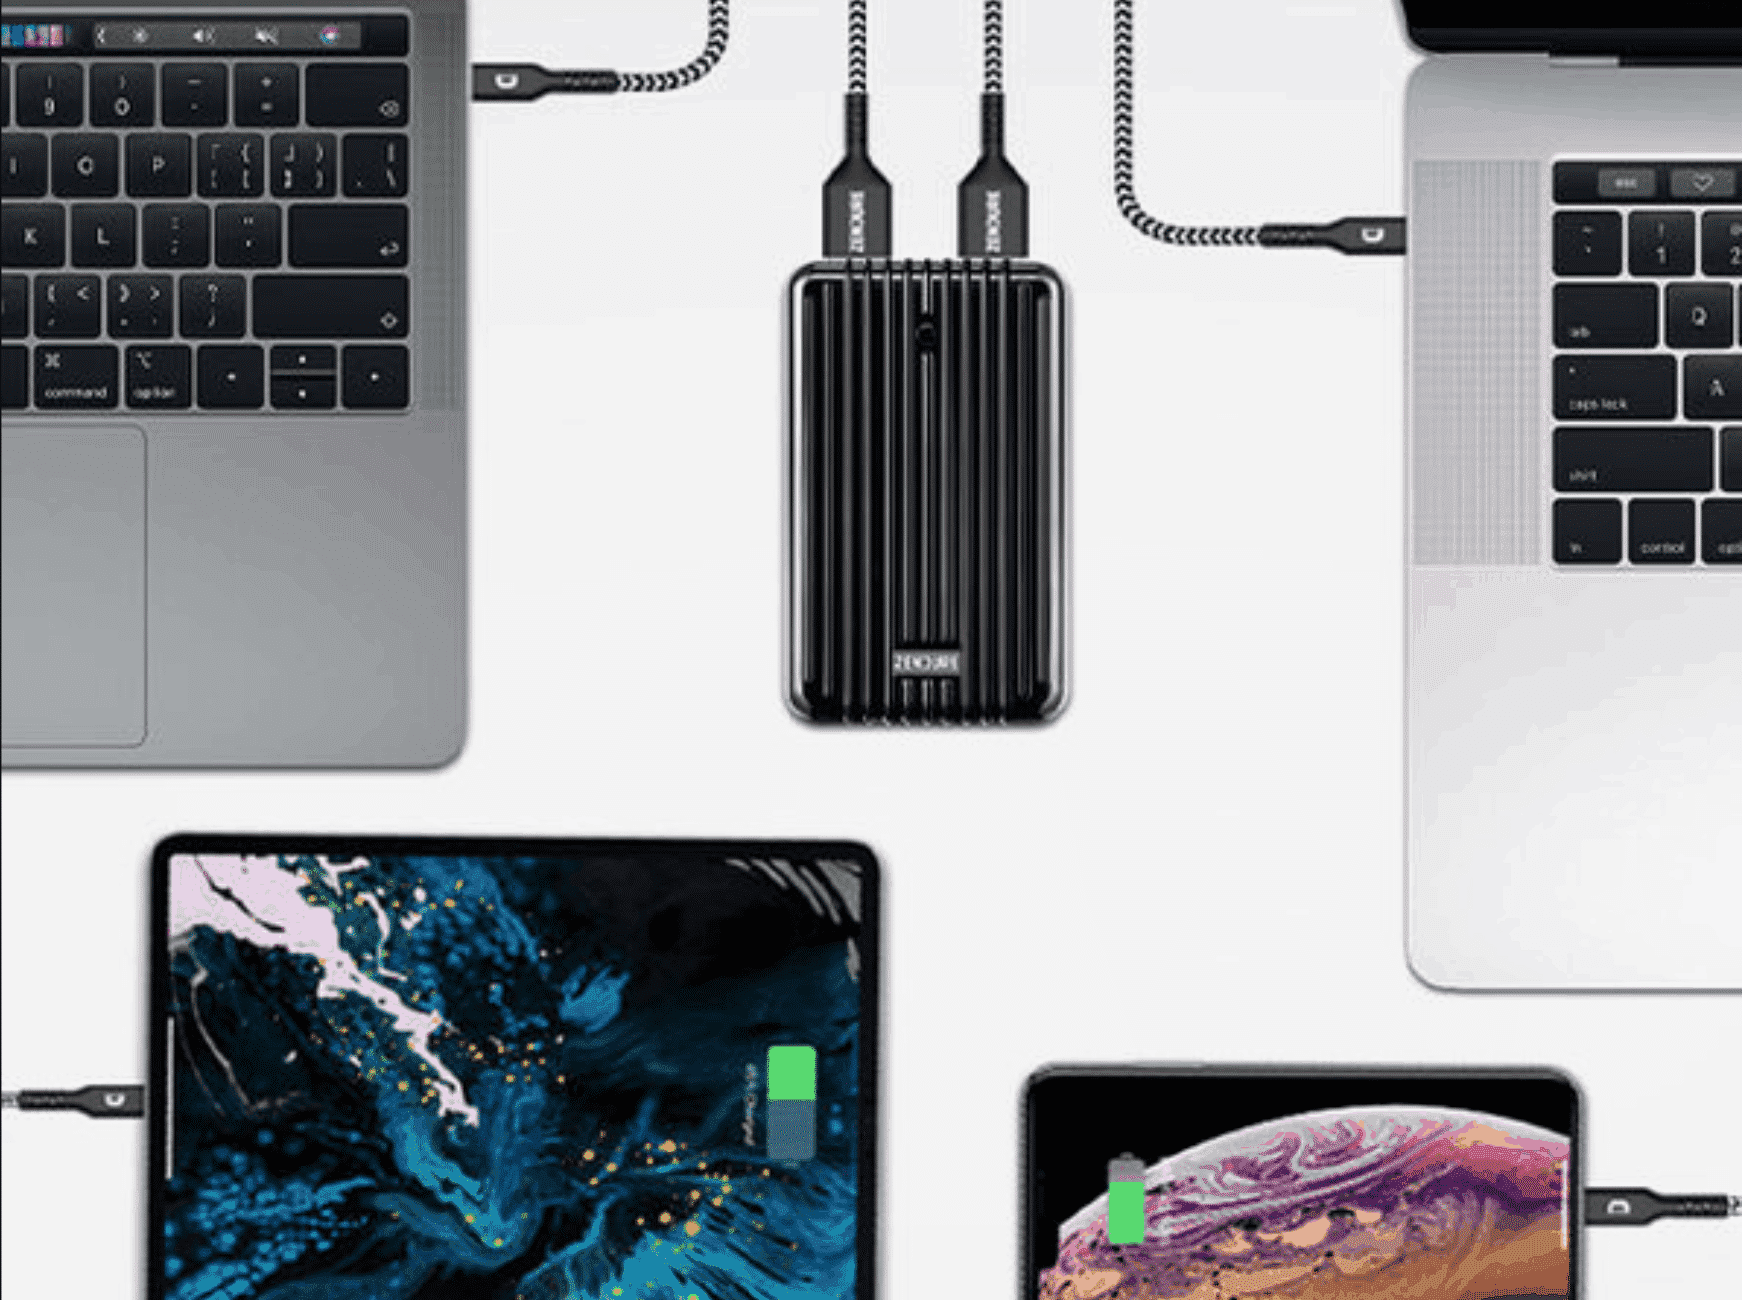 portable charger for the iPhone and MacBook